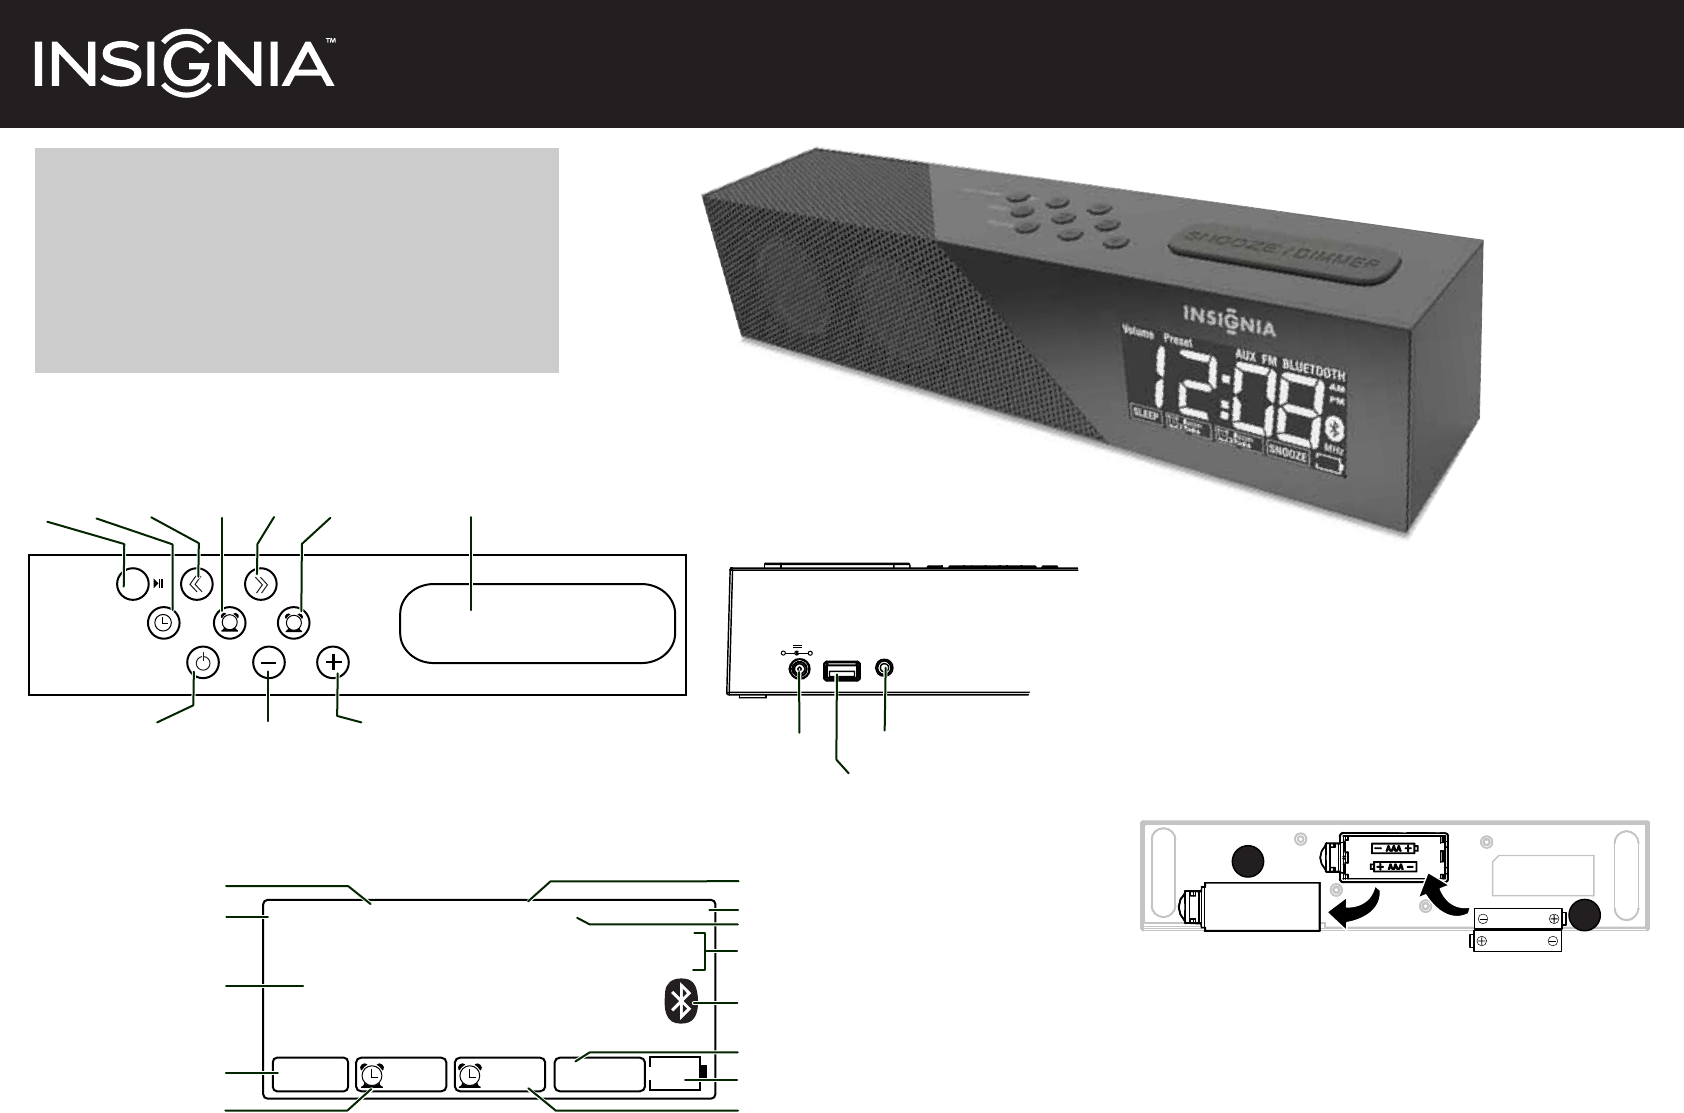 insignia clock radio ns clbt01 user guide manualsonline com rh portablemedia manualsonline com owners manual for insignia tv 32 Inch Insignia TV Manual